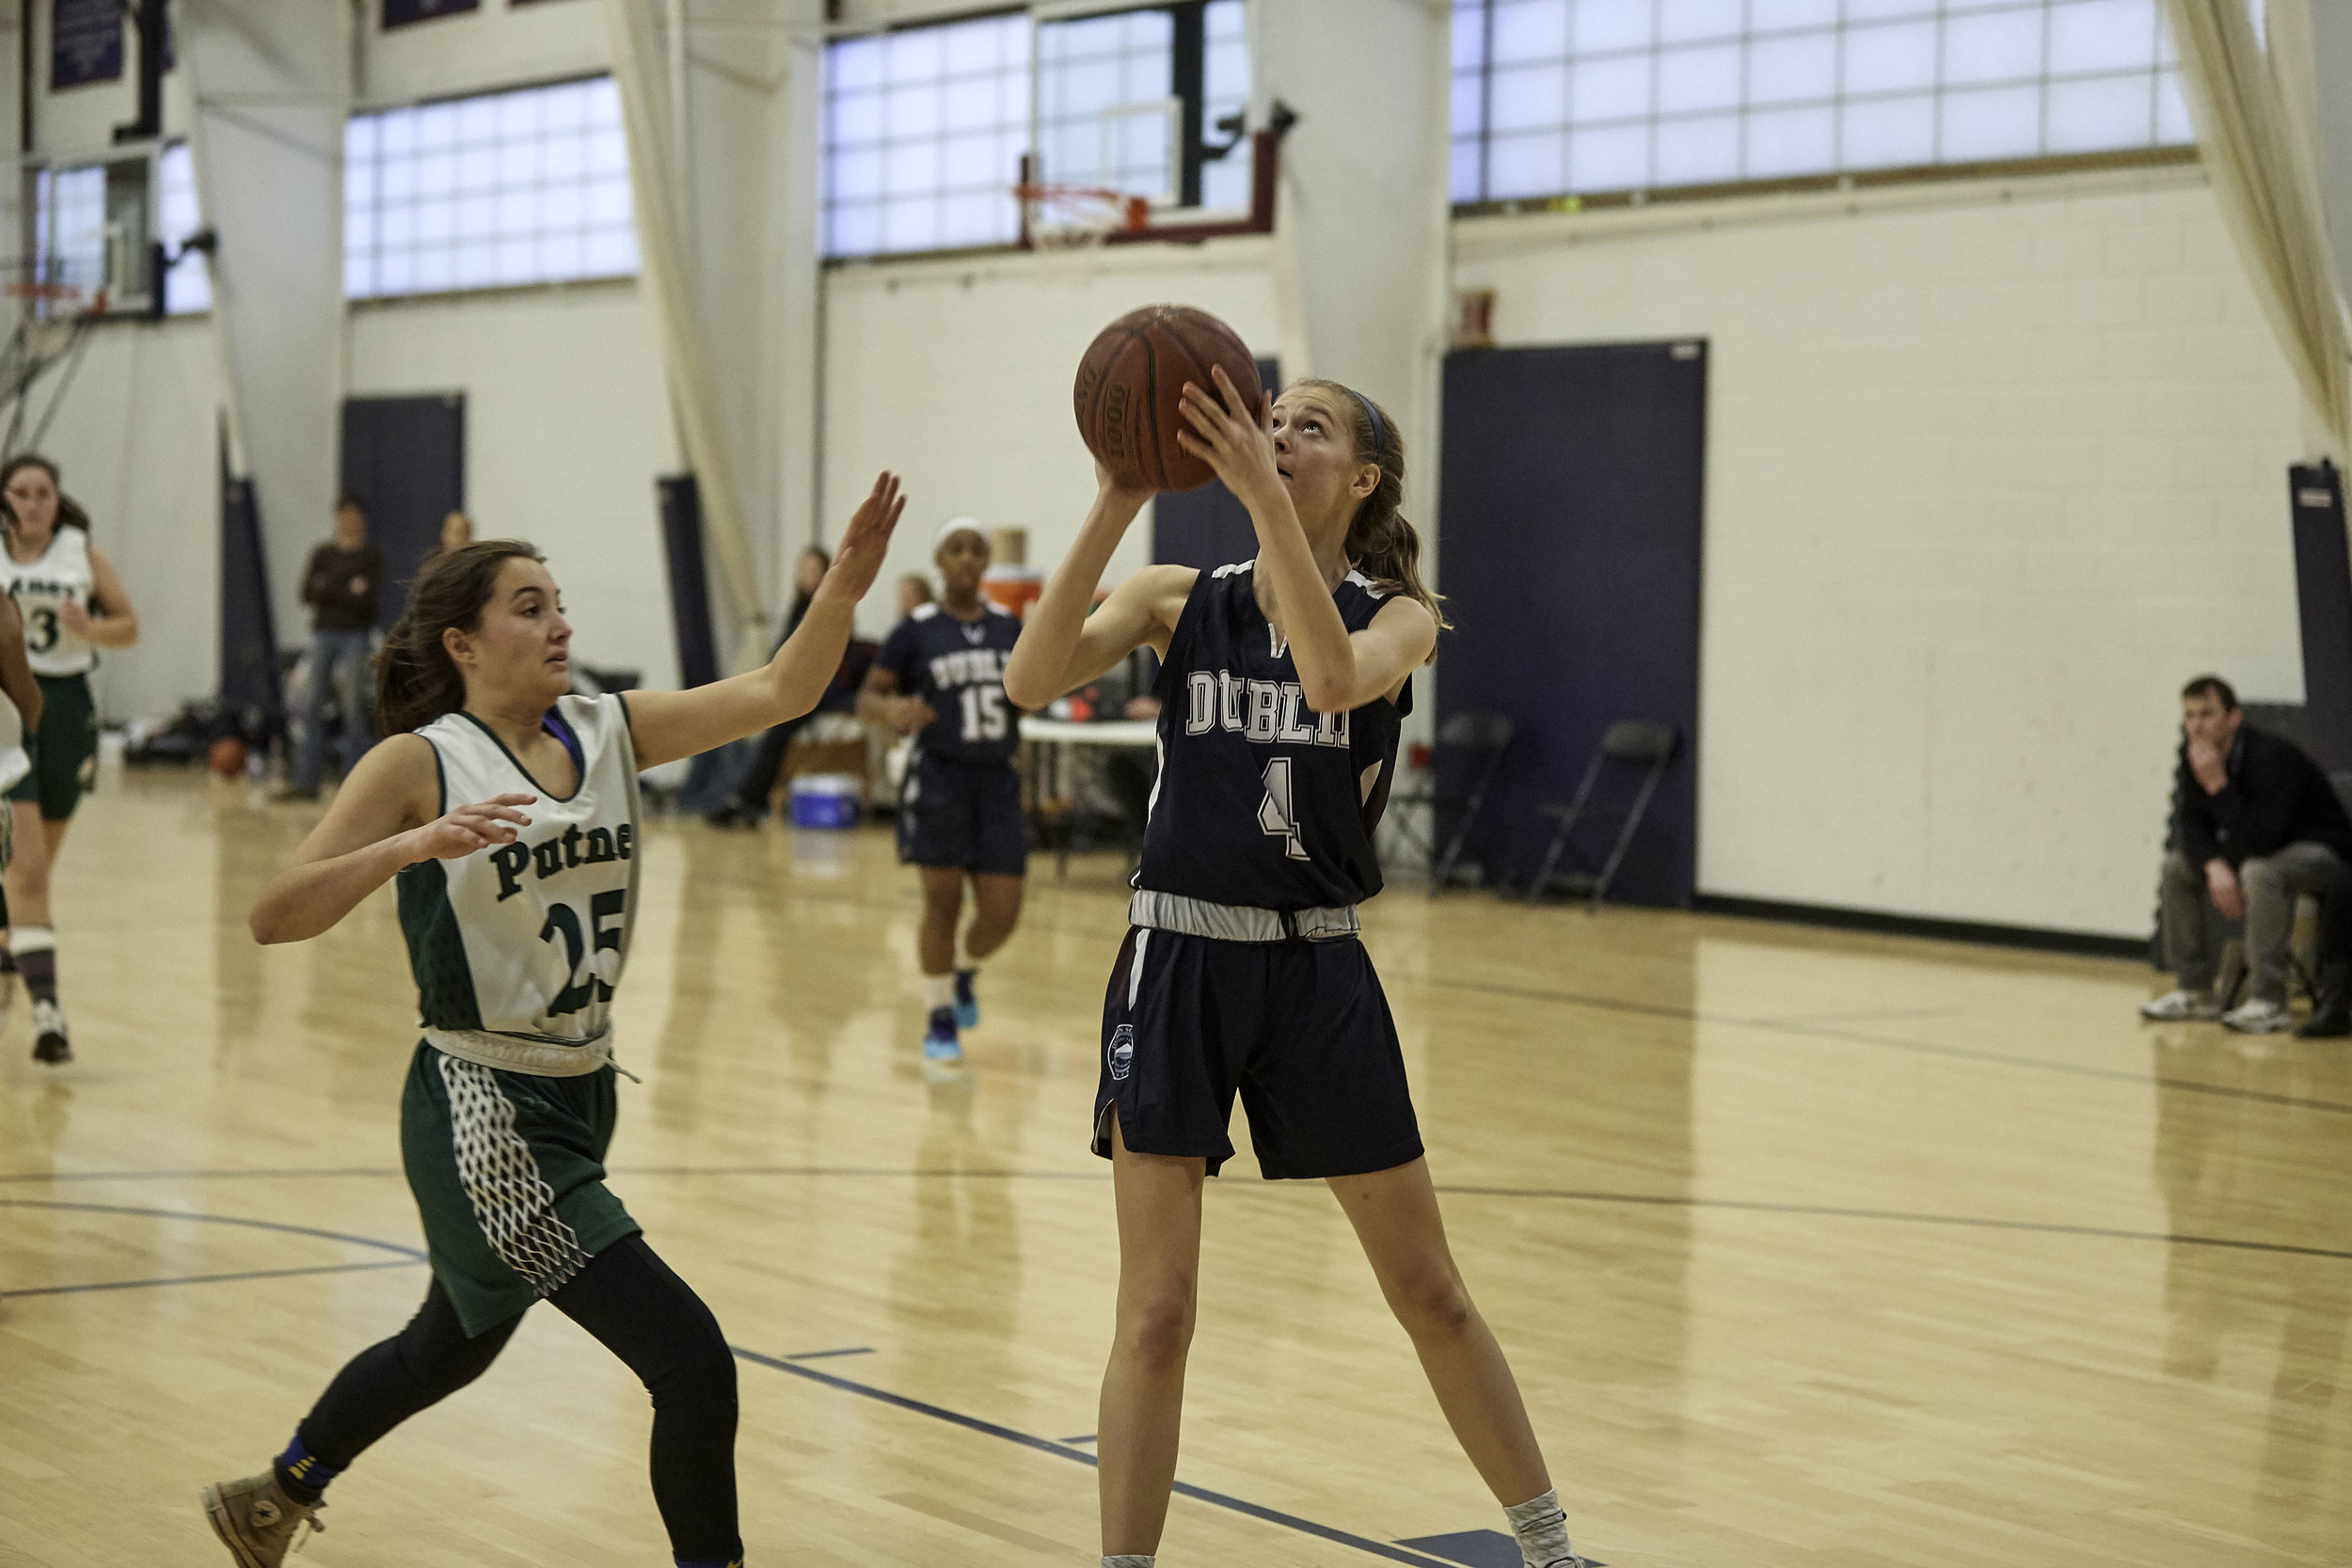 Basketball vs Putney School, February 9, 2019 - 167335.jpg